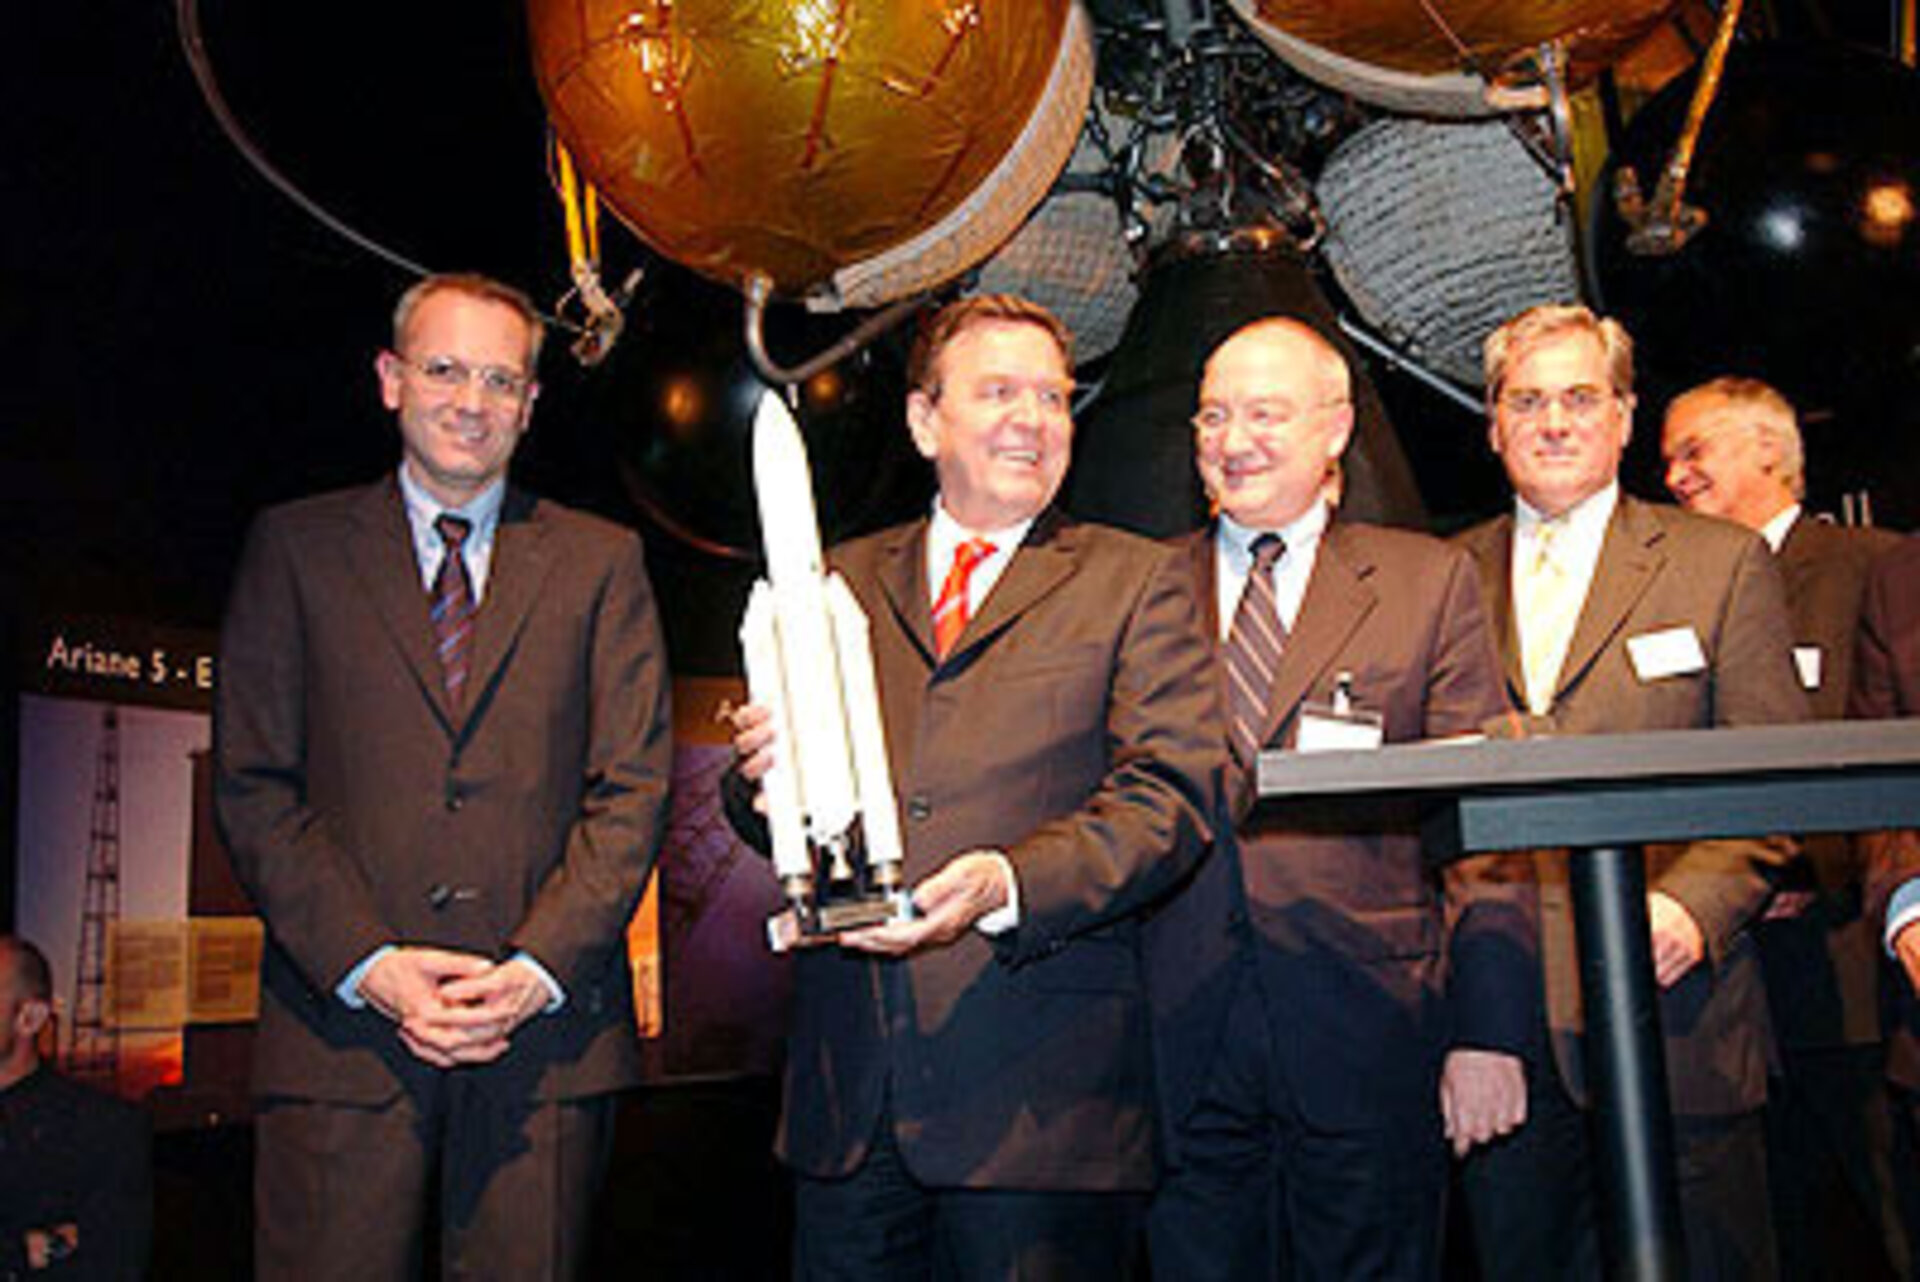 Signature ceremony for 30 Ariane 5 launchers